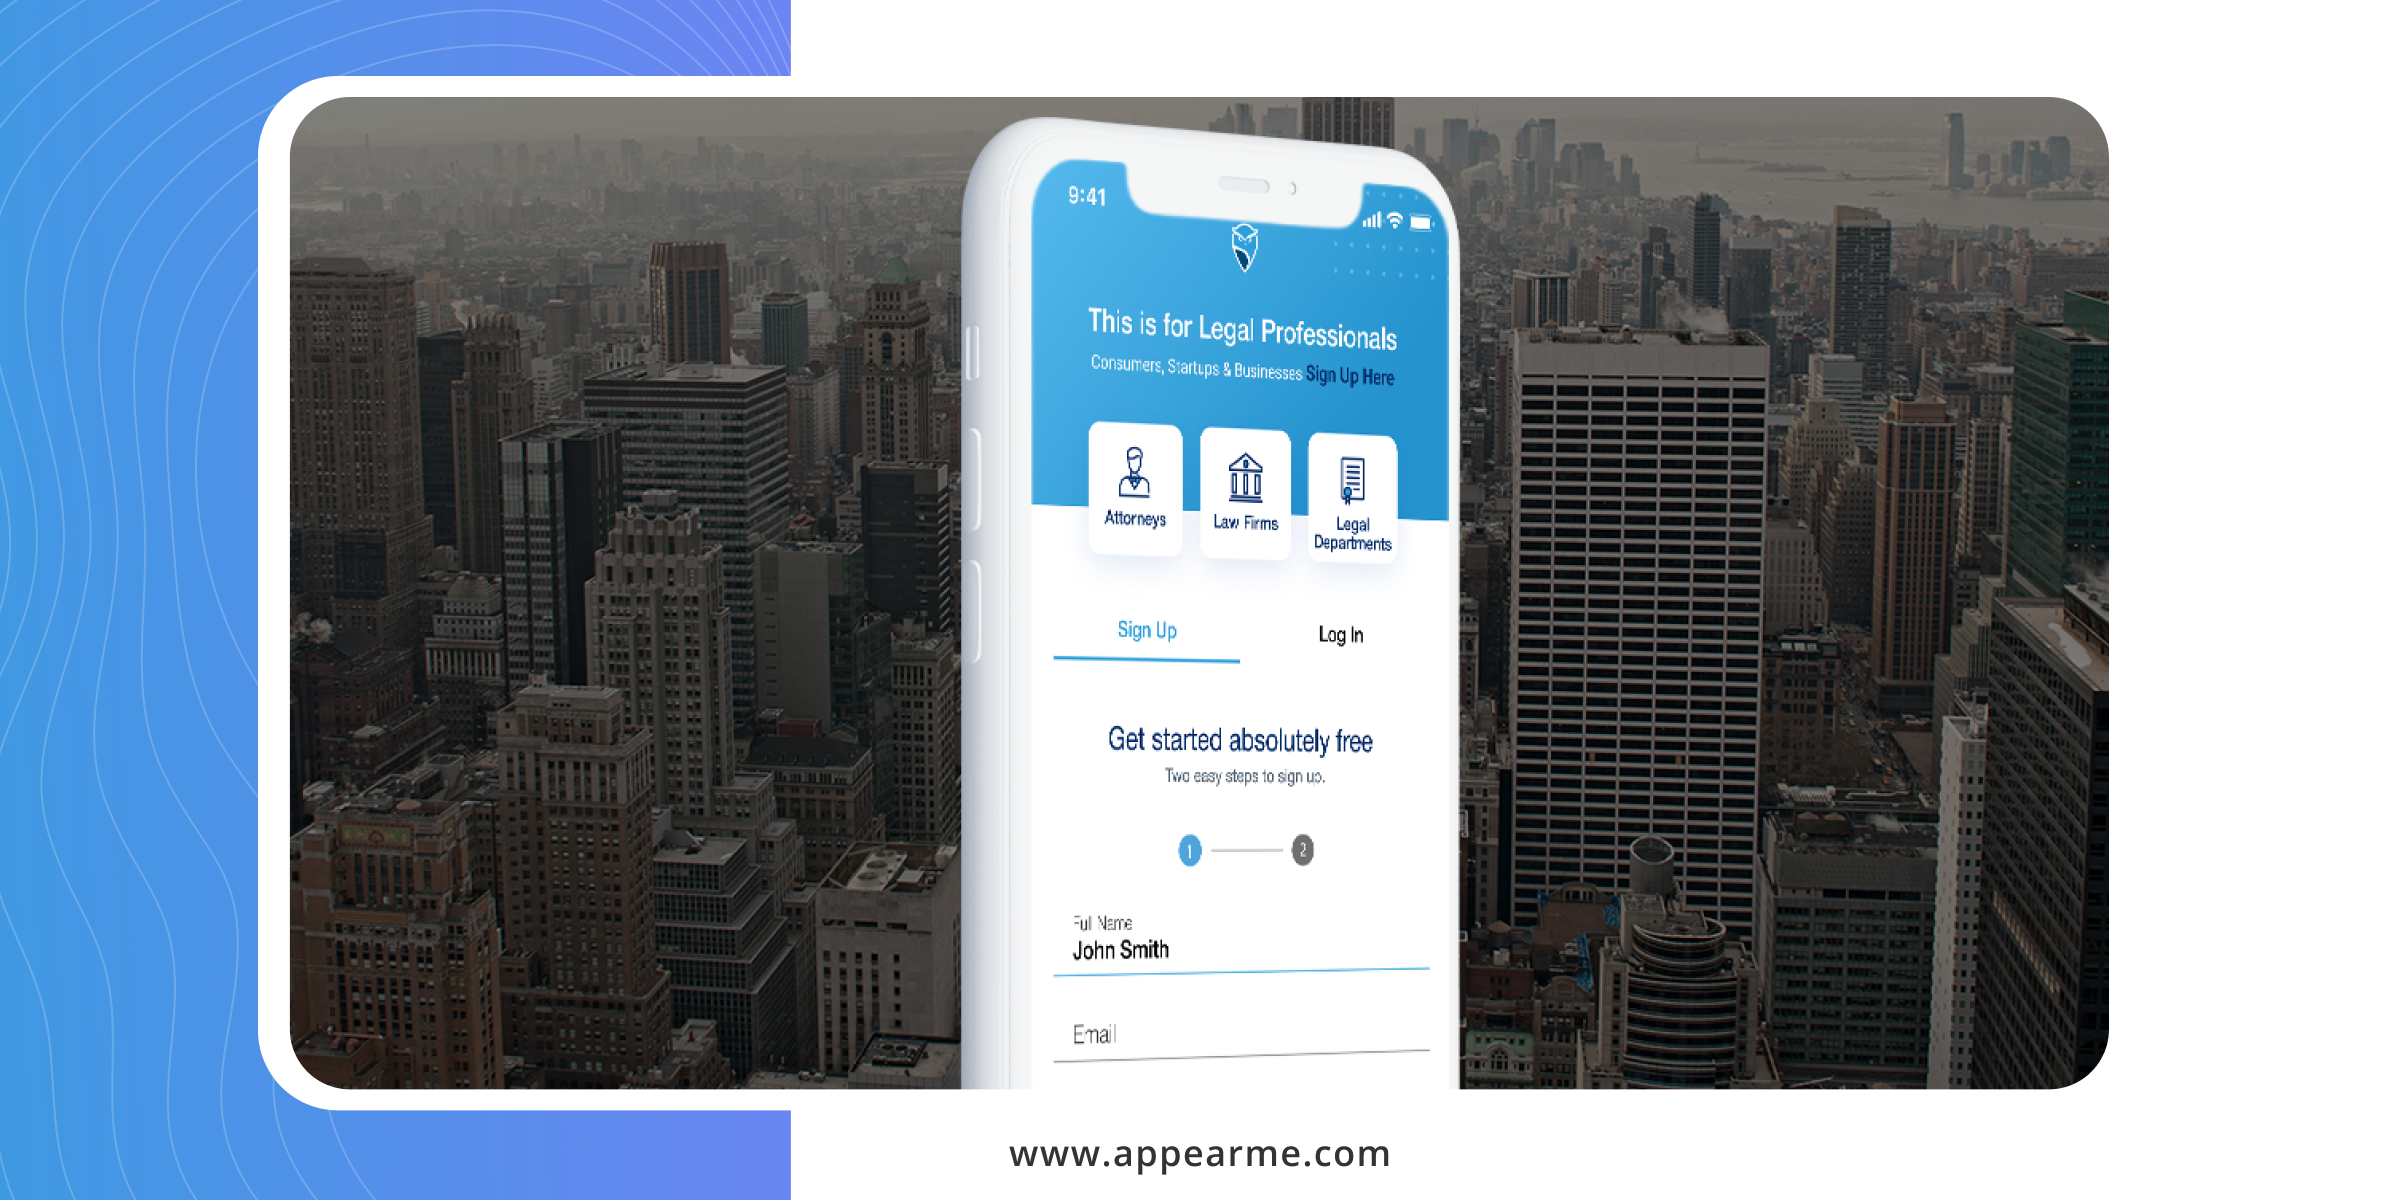 Are you Looking for Appearance Attorneys Nationwide? Sign Up for AppearMe